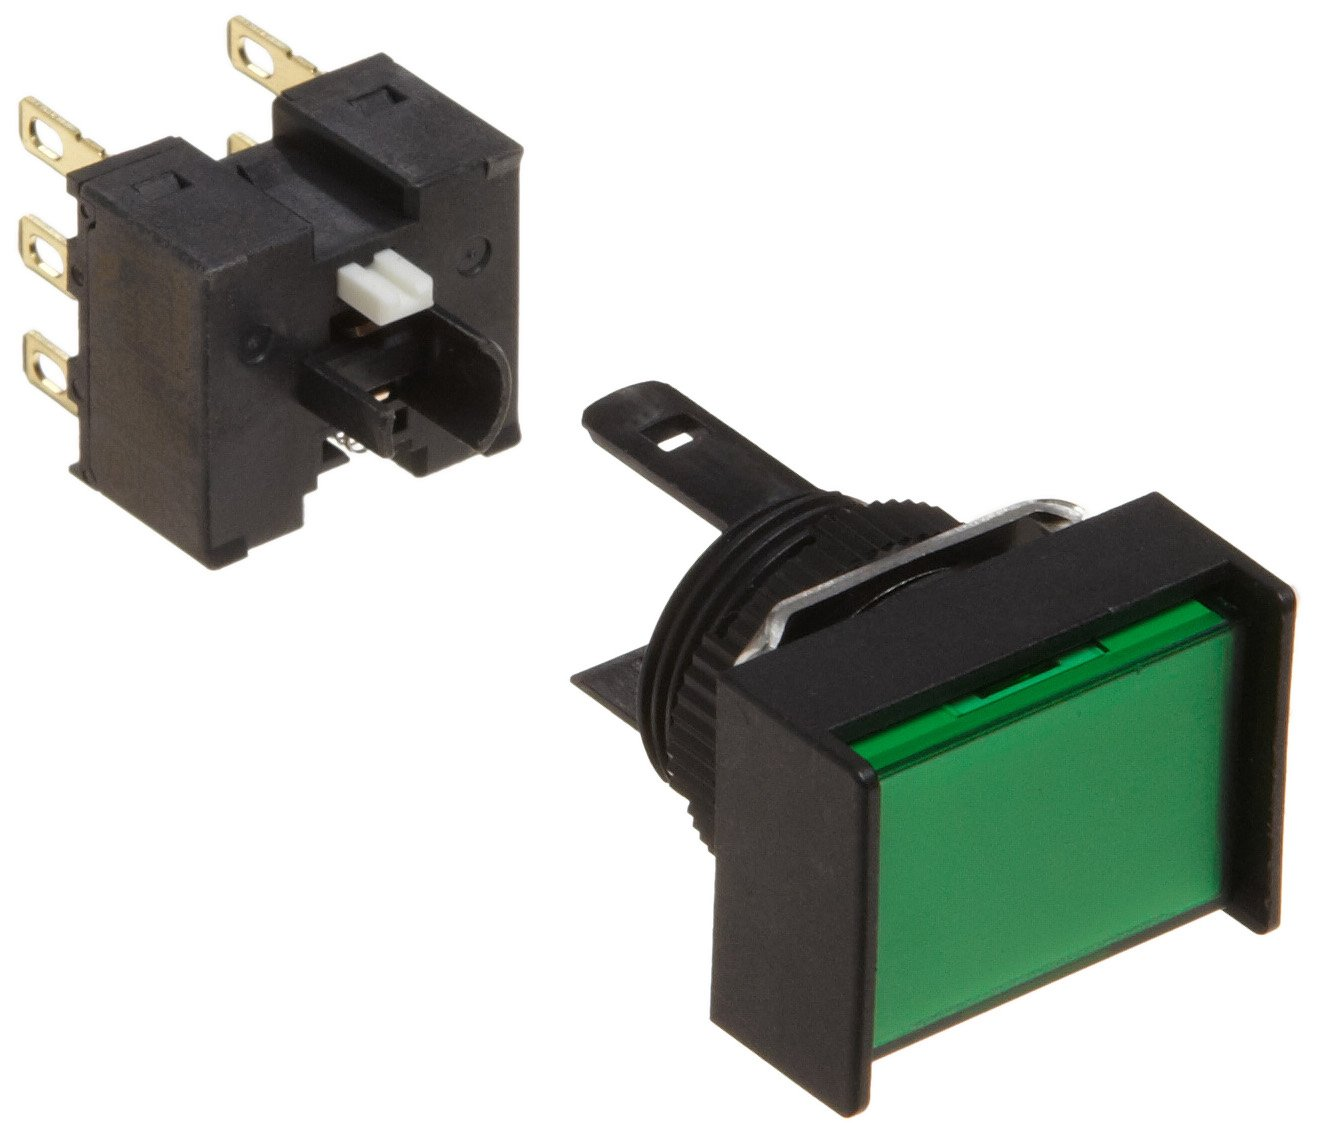 Omron A165-JGA-2 Two Way Guard Type Pushbutton and Switch, Solder Terminal, IP65 Oil Resistant, 16mm Mounting Aperture, Non-Lighted, Alternate Operation, Rectangular, Green, Double Pole Double Throw Contacts